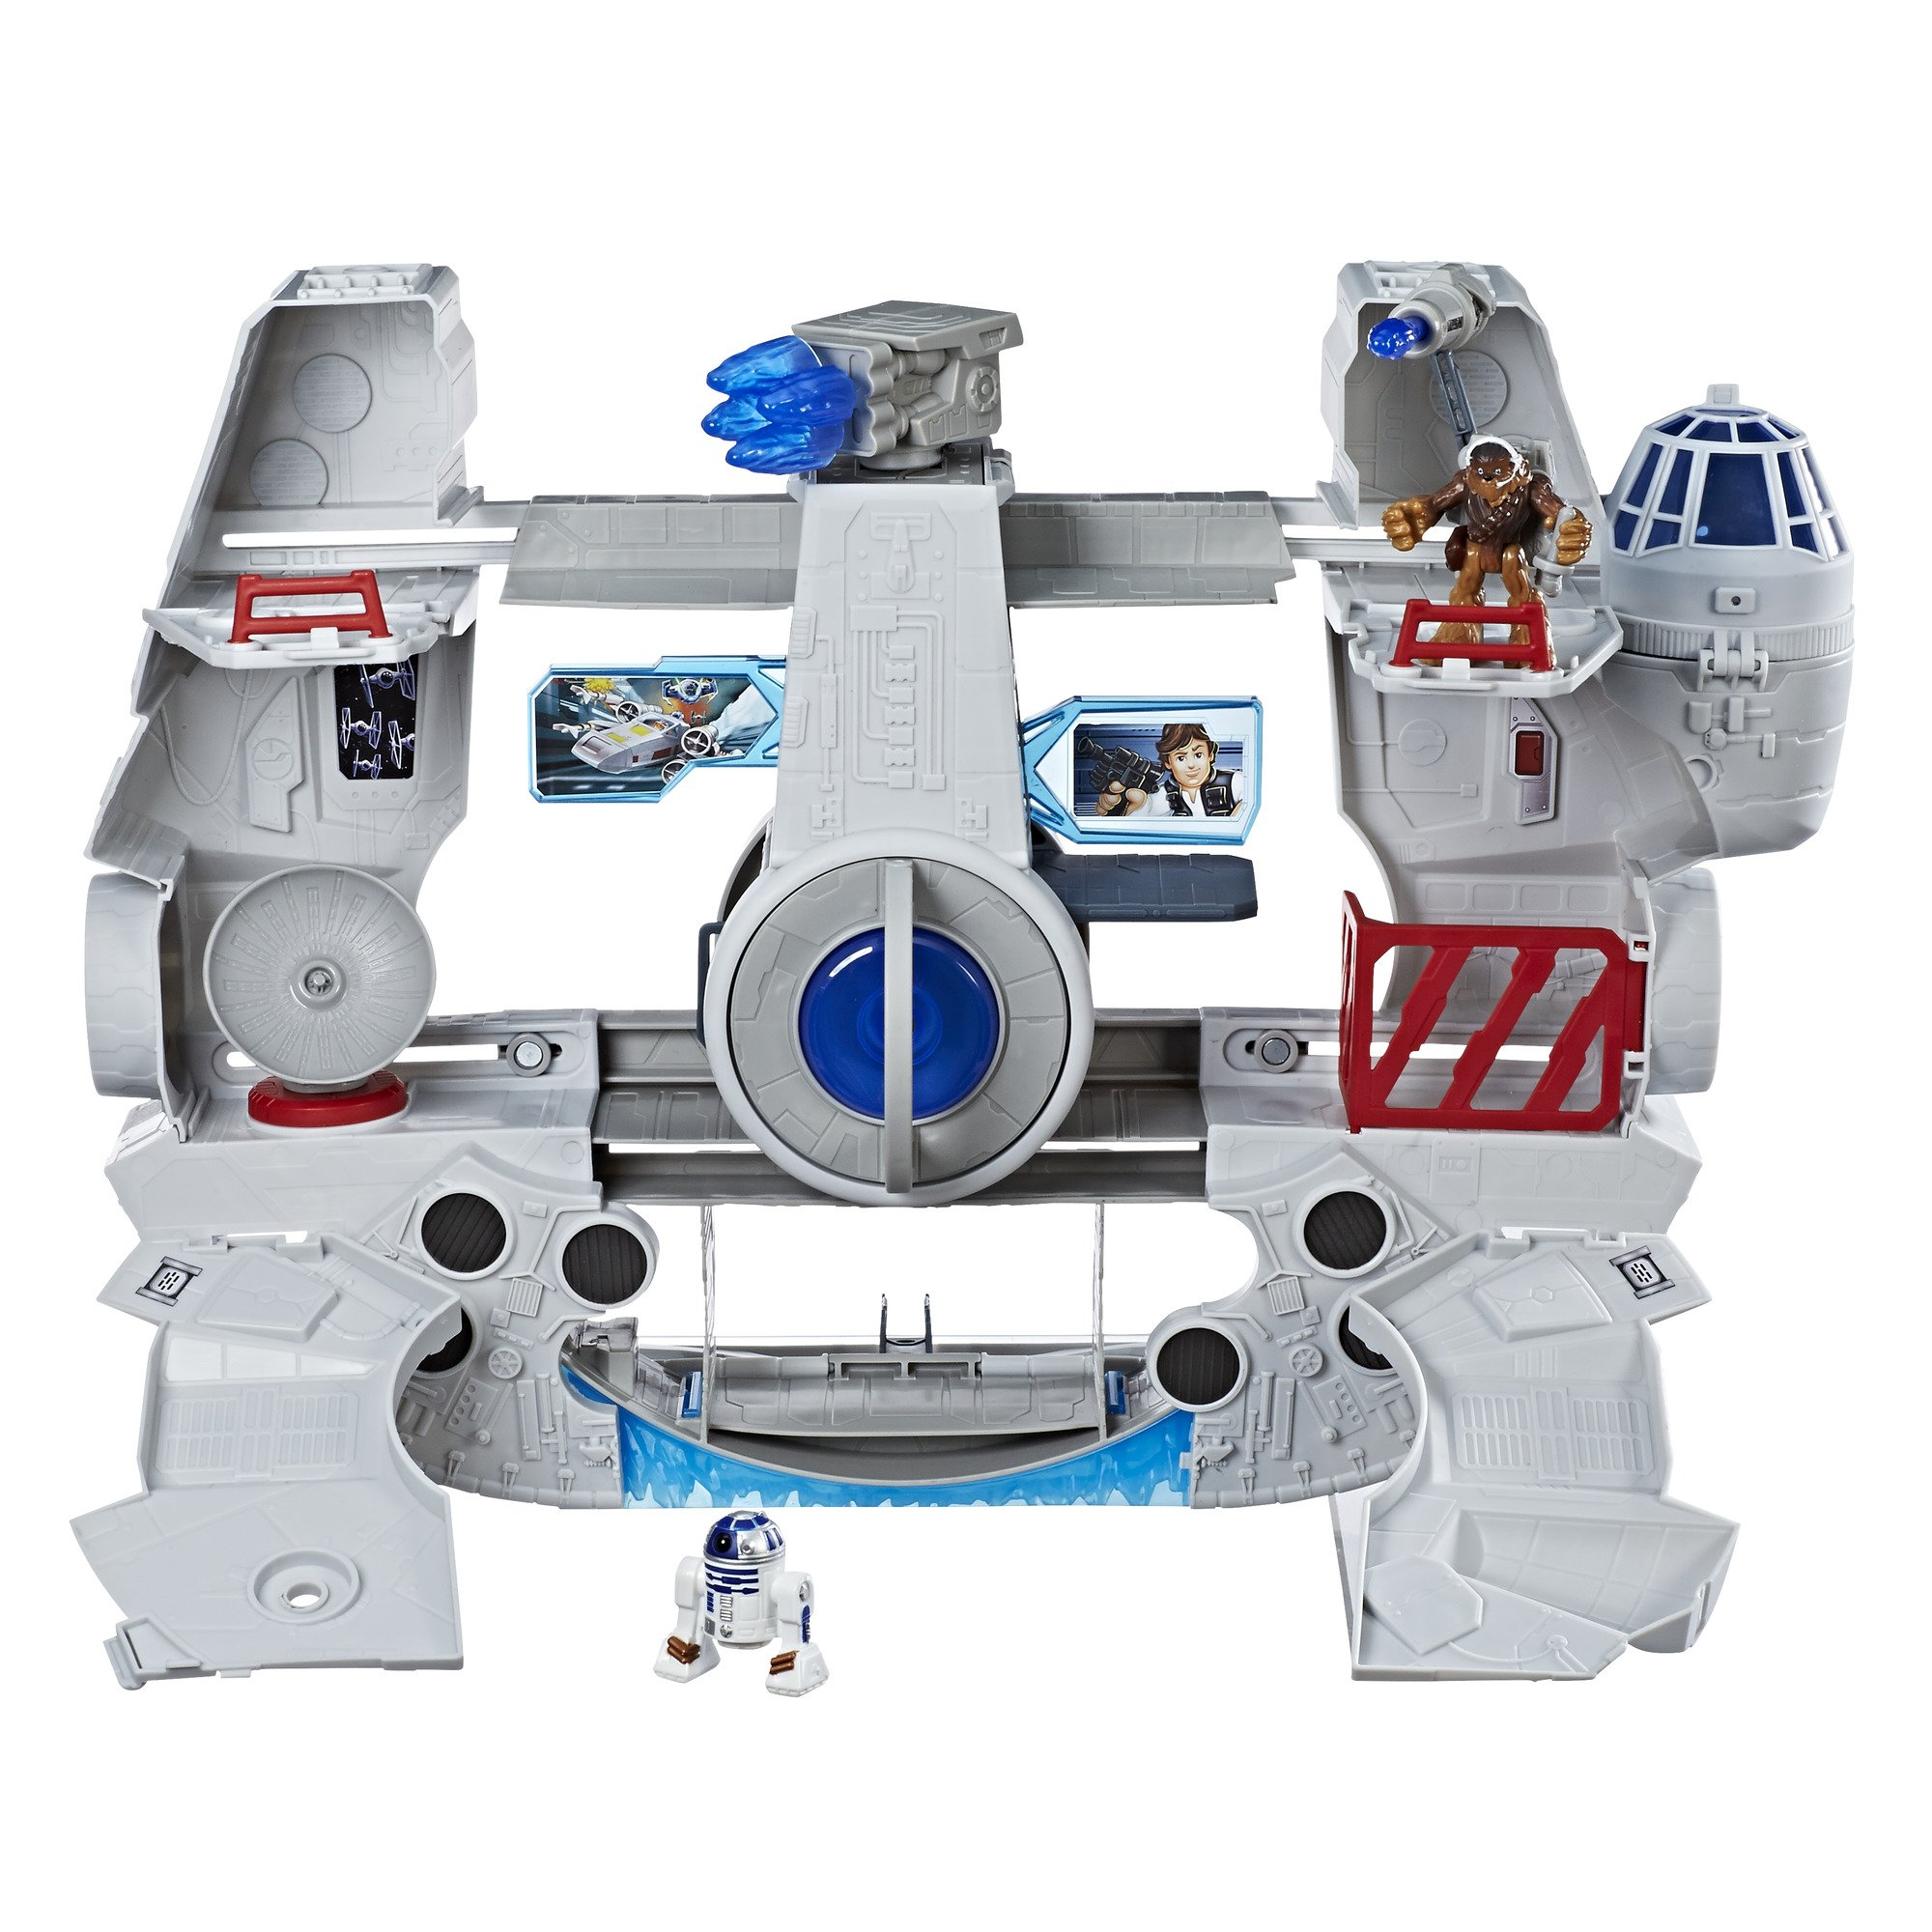 Star Wars Galactic Heroes 2-In-1 Millennium Falcon Vehicle Playset, Chewbacca, R2-D2 2.5-Inch Action Figures, Lights and Sounds, Toys for Kids Ages 3 and Up by Playskool (Image #1)